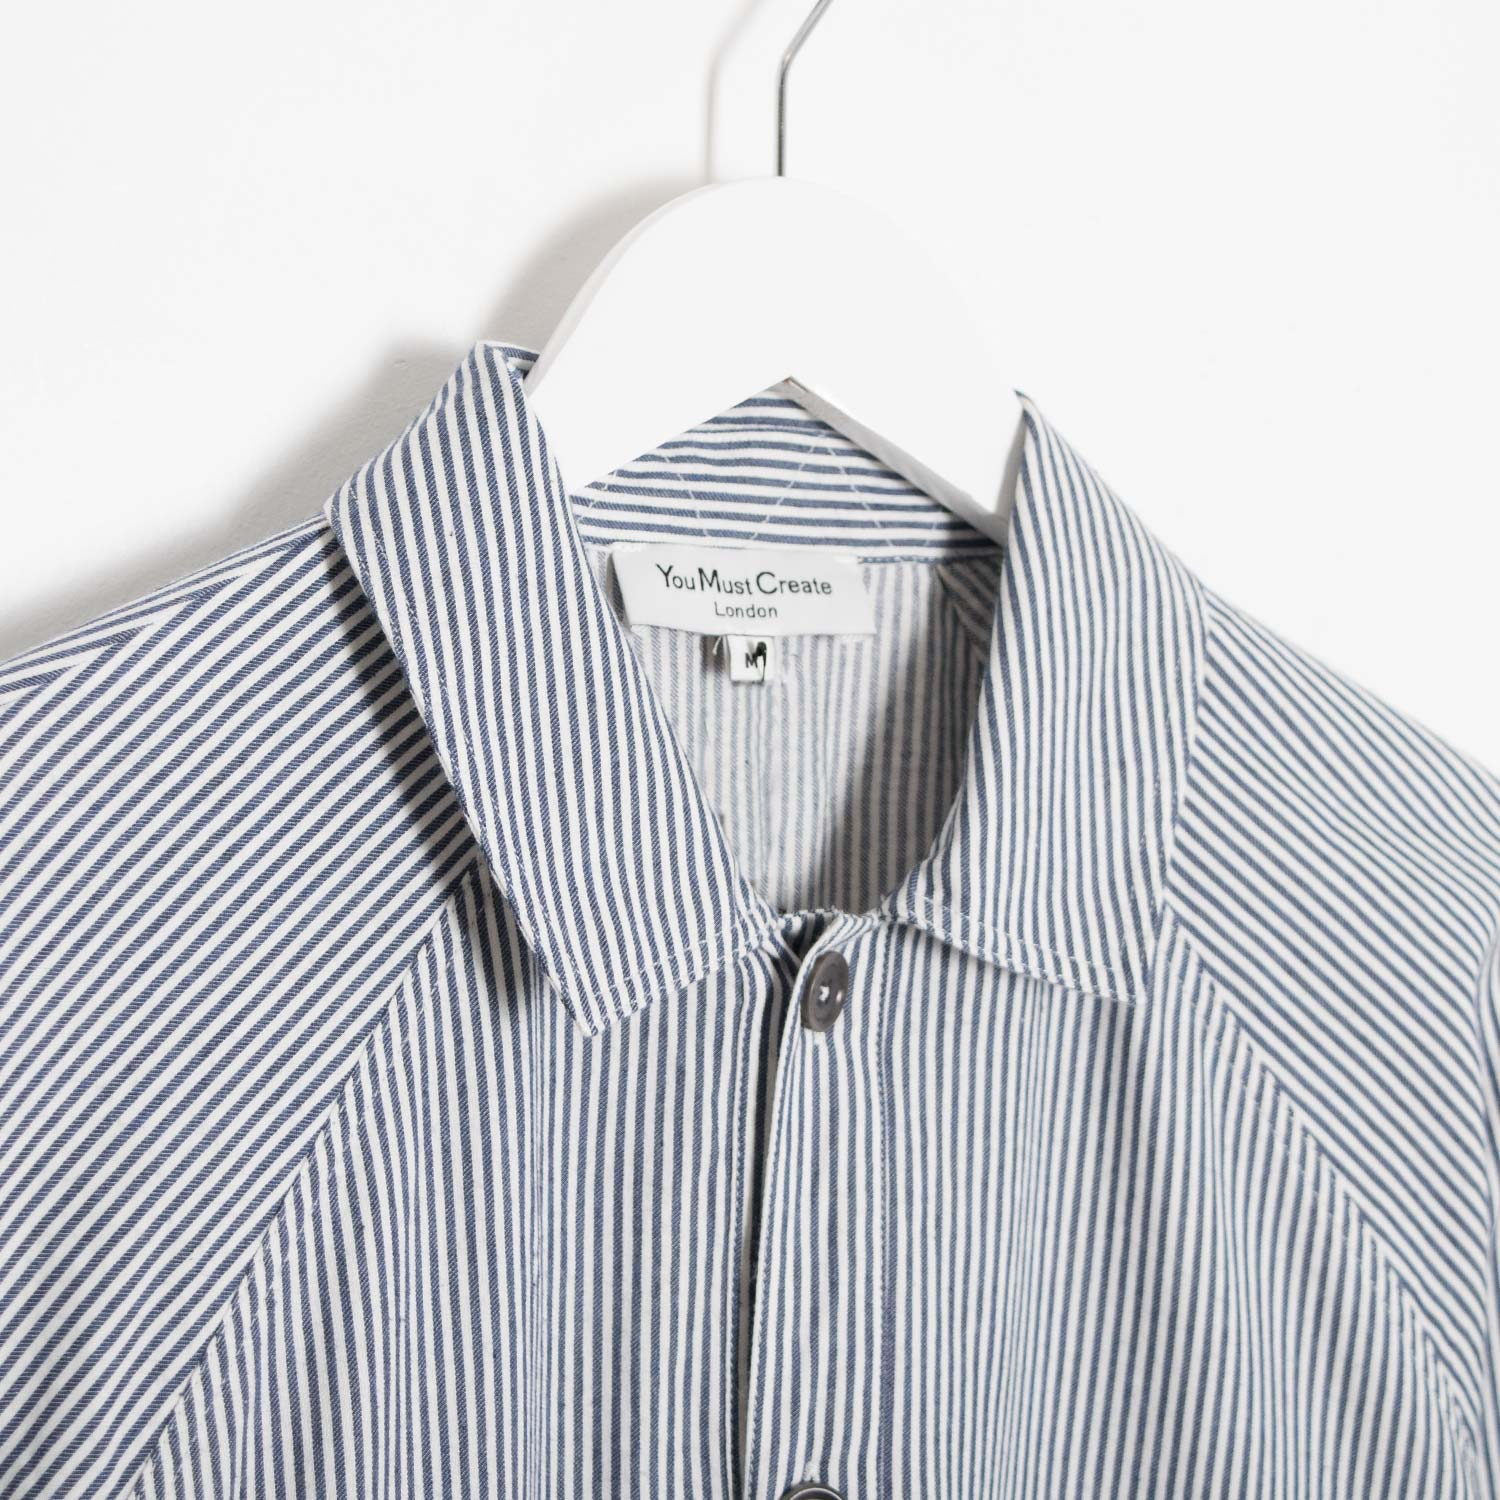 YMC Cool Hand Luke Shirt - Navy